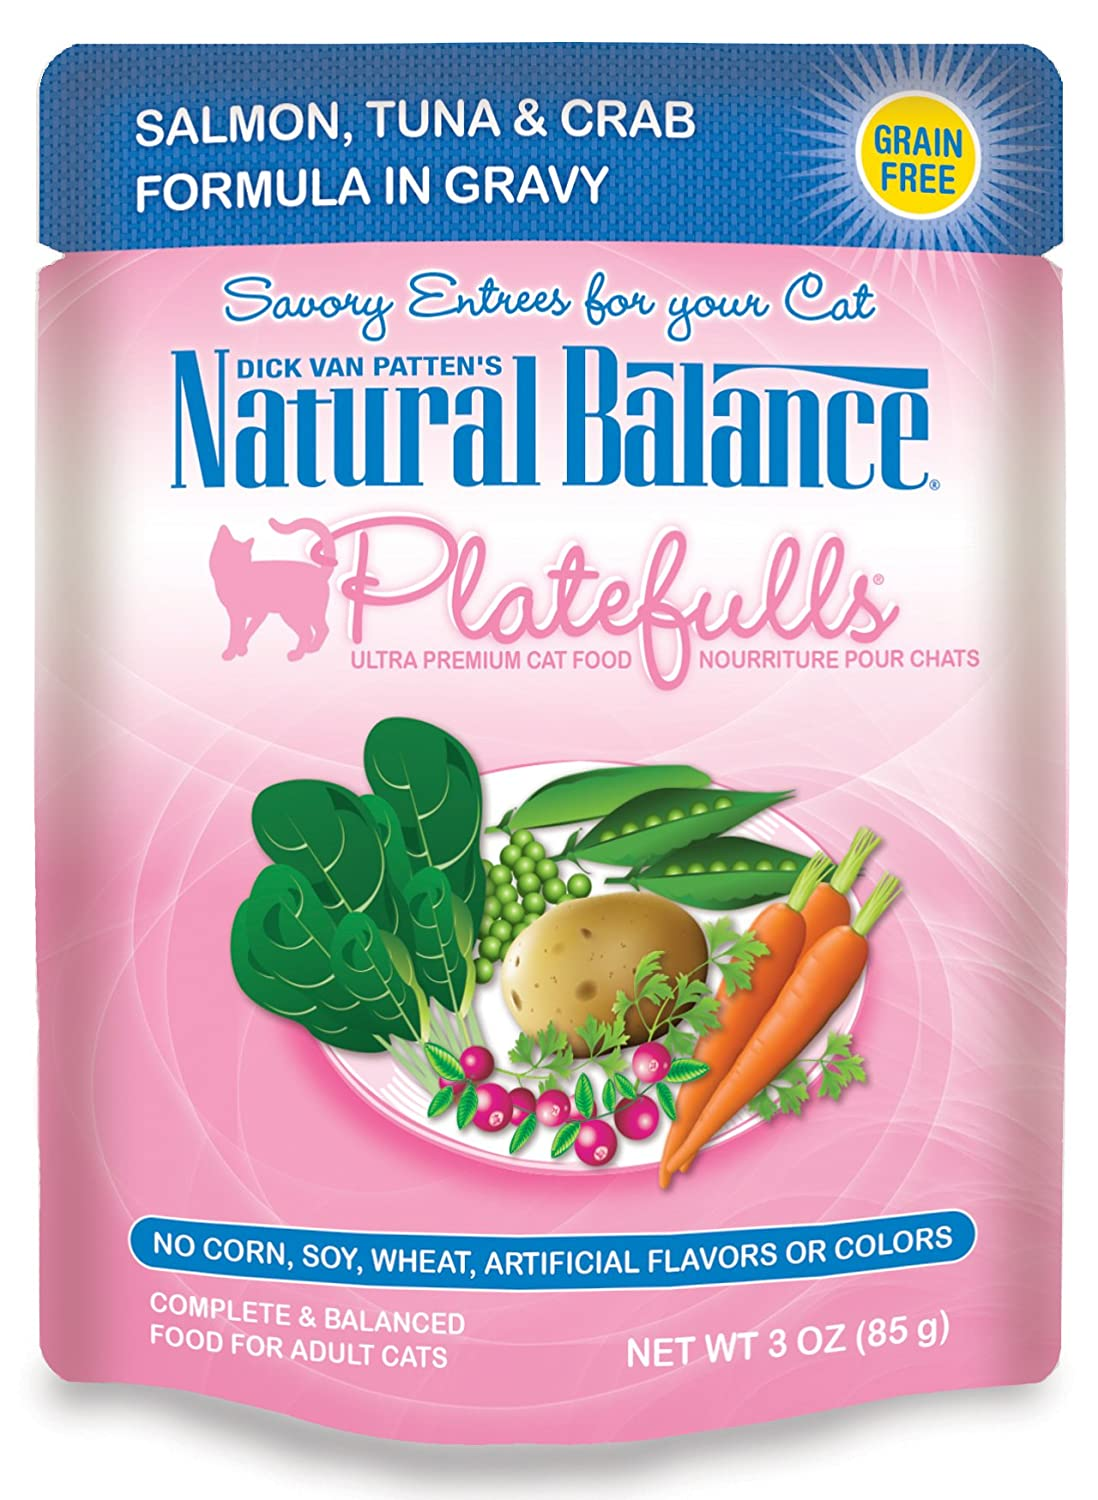 Dick Van Patten's Natural Balance Platefulls Salmon, Tuna & Crab Formula in Gravy Cat Food 3oz, Pack of 24